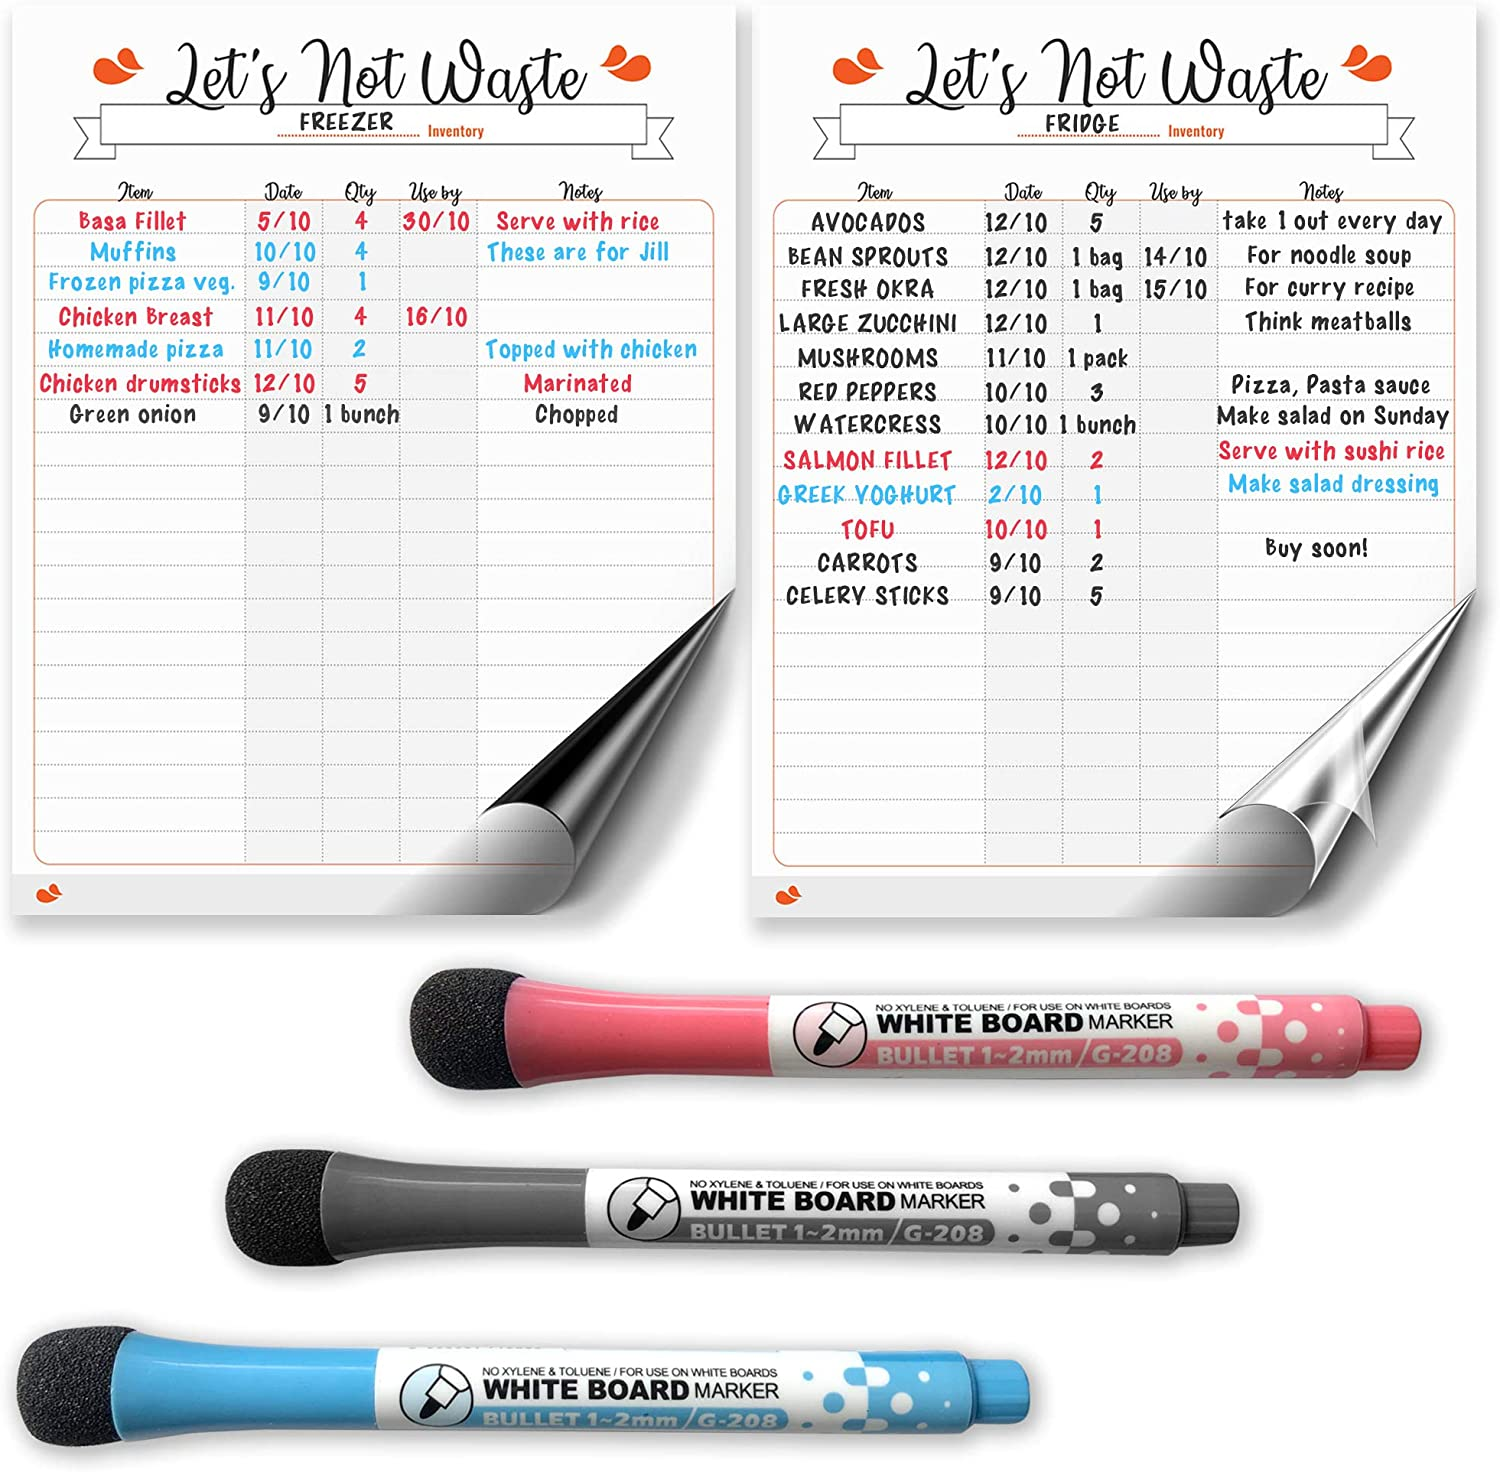 "Set of 1 Magnetic Dry Erase White Board and 1 Removable Dry Erase Sticker for Freezer, Fridge and Pantry Inventory Tracking (9.75""x 12.50""). Includes 3 Color Magnetic Dry Erase Pens"